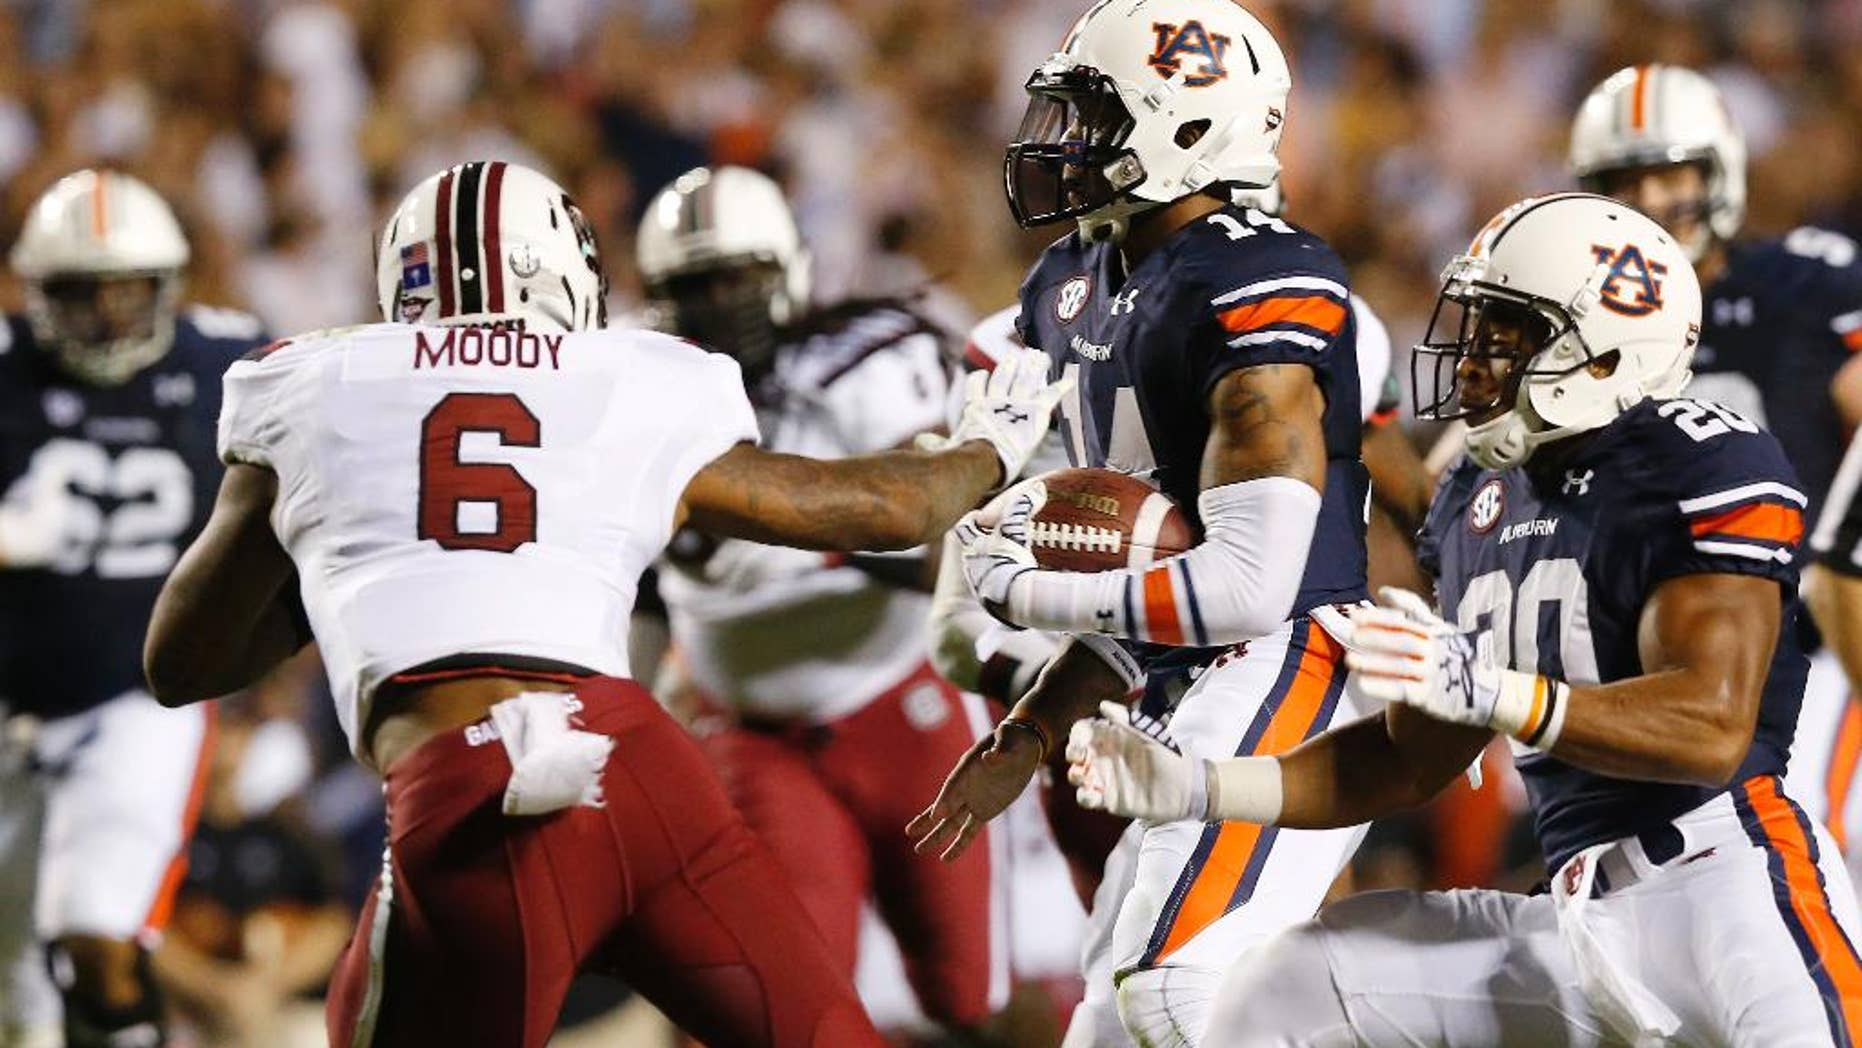 Auburn quarterback Nick Marshall (14) runs the ball in for a touchdown against South Carolina during the second half of an NCAA college football game Saturday, Oct. 25, 2014, in Auburn, Ala. Auburn won 42-35. (AP Photo/Brynn Anderson)